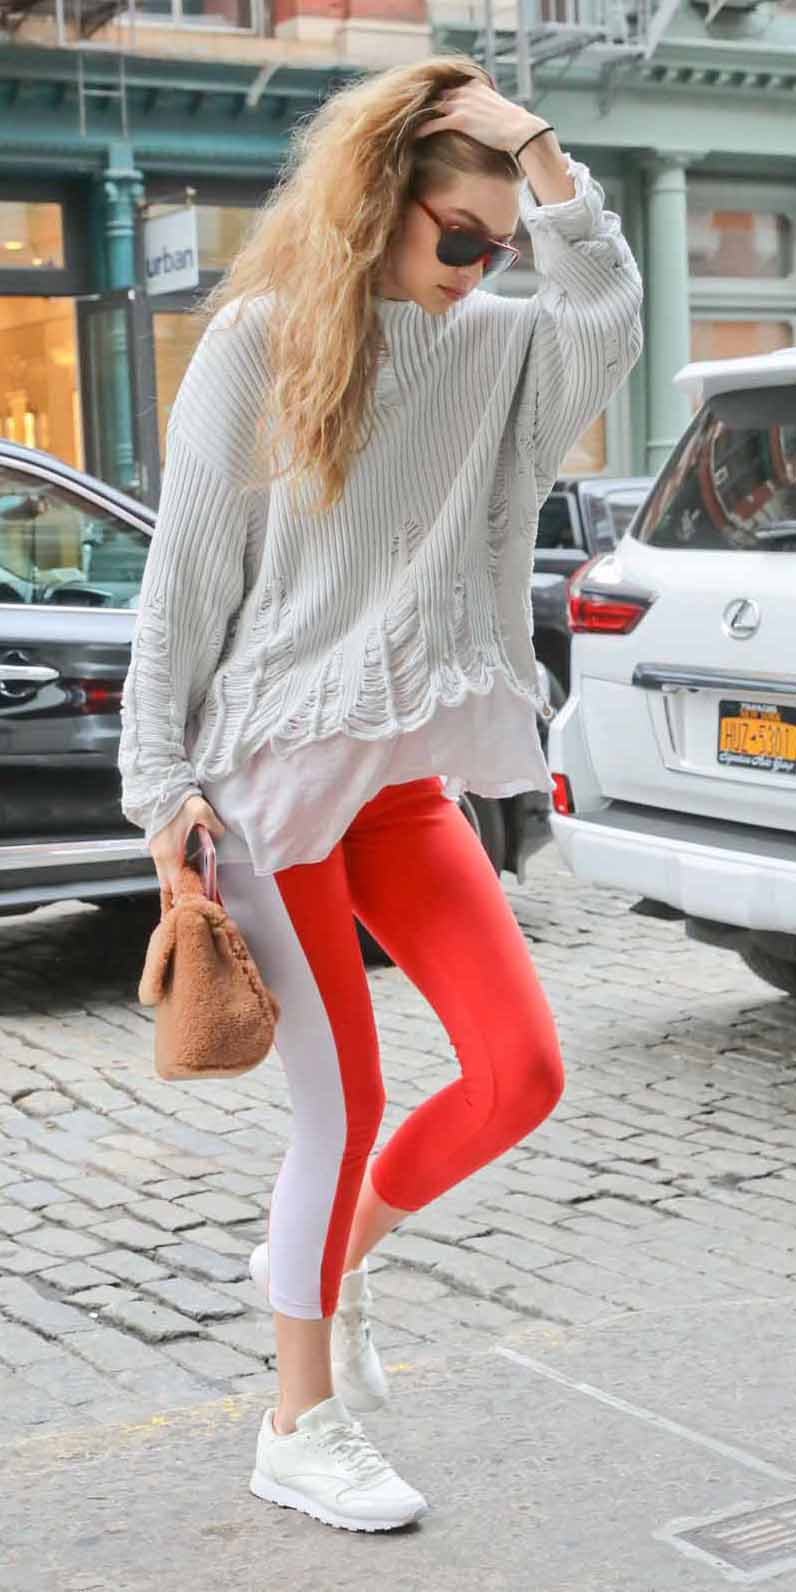 red-leggings-white-sweater-blonde-sun-gigihadid-cognac-bag-fur-white-shoe-sneakers-fall-winter-weekend.jpg